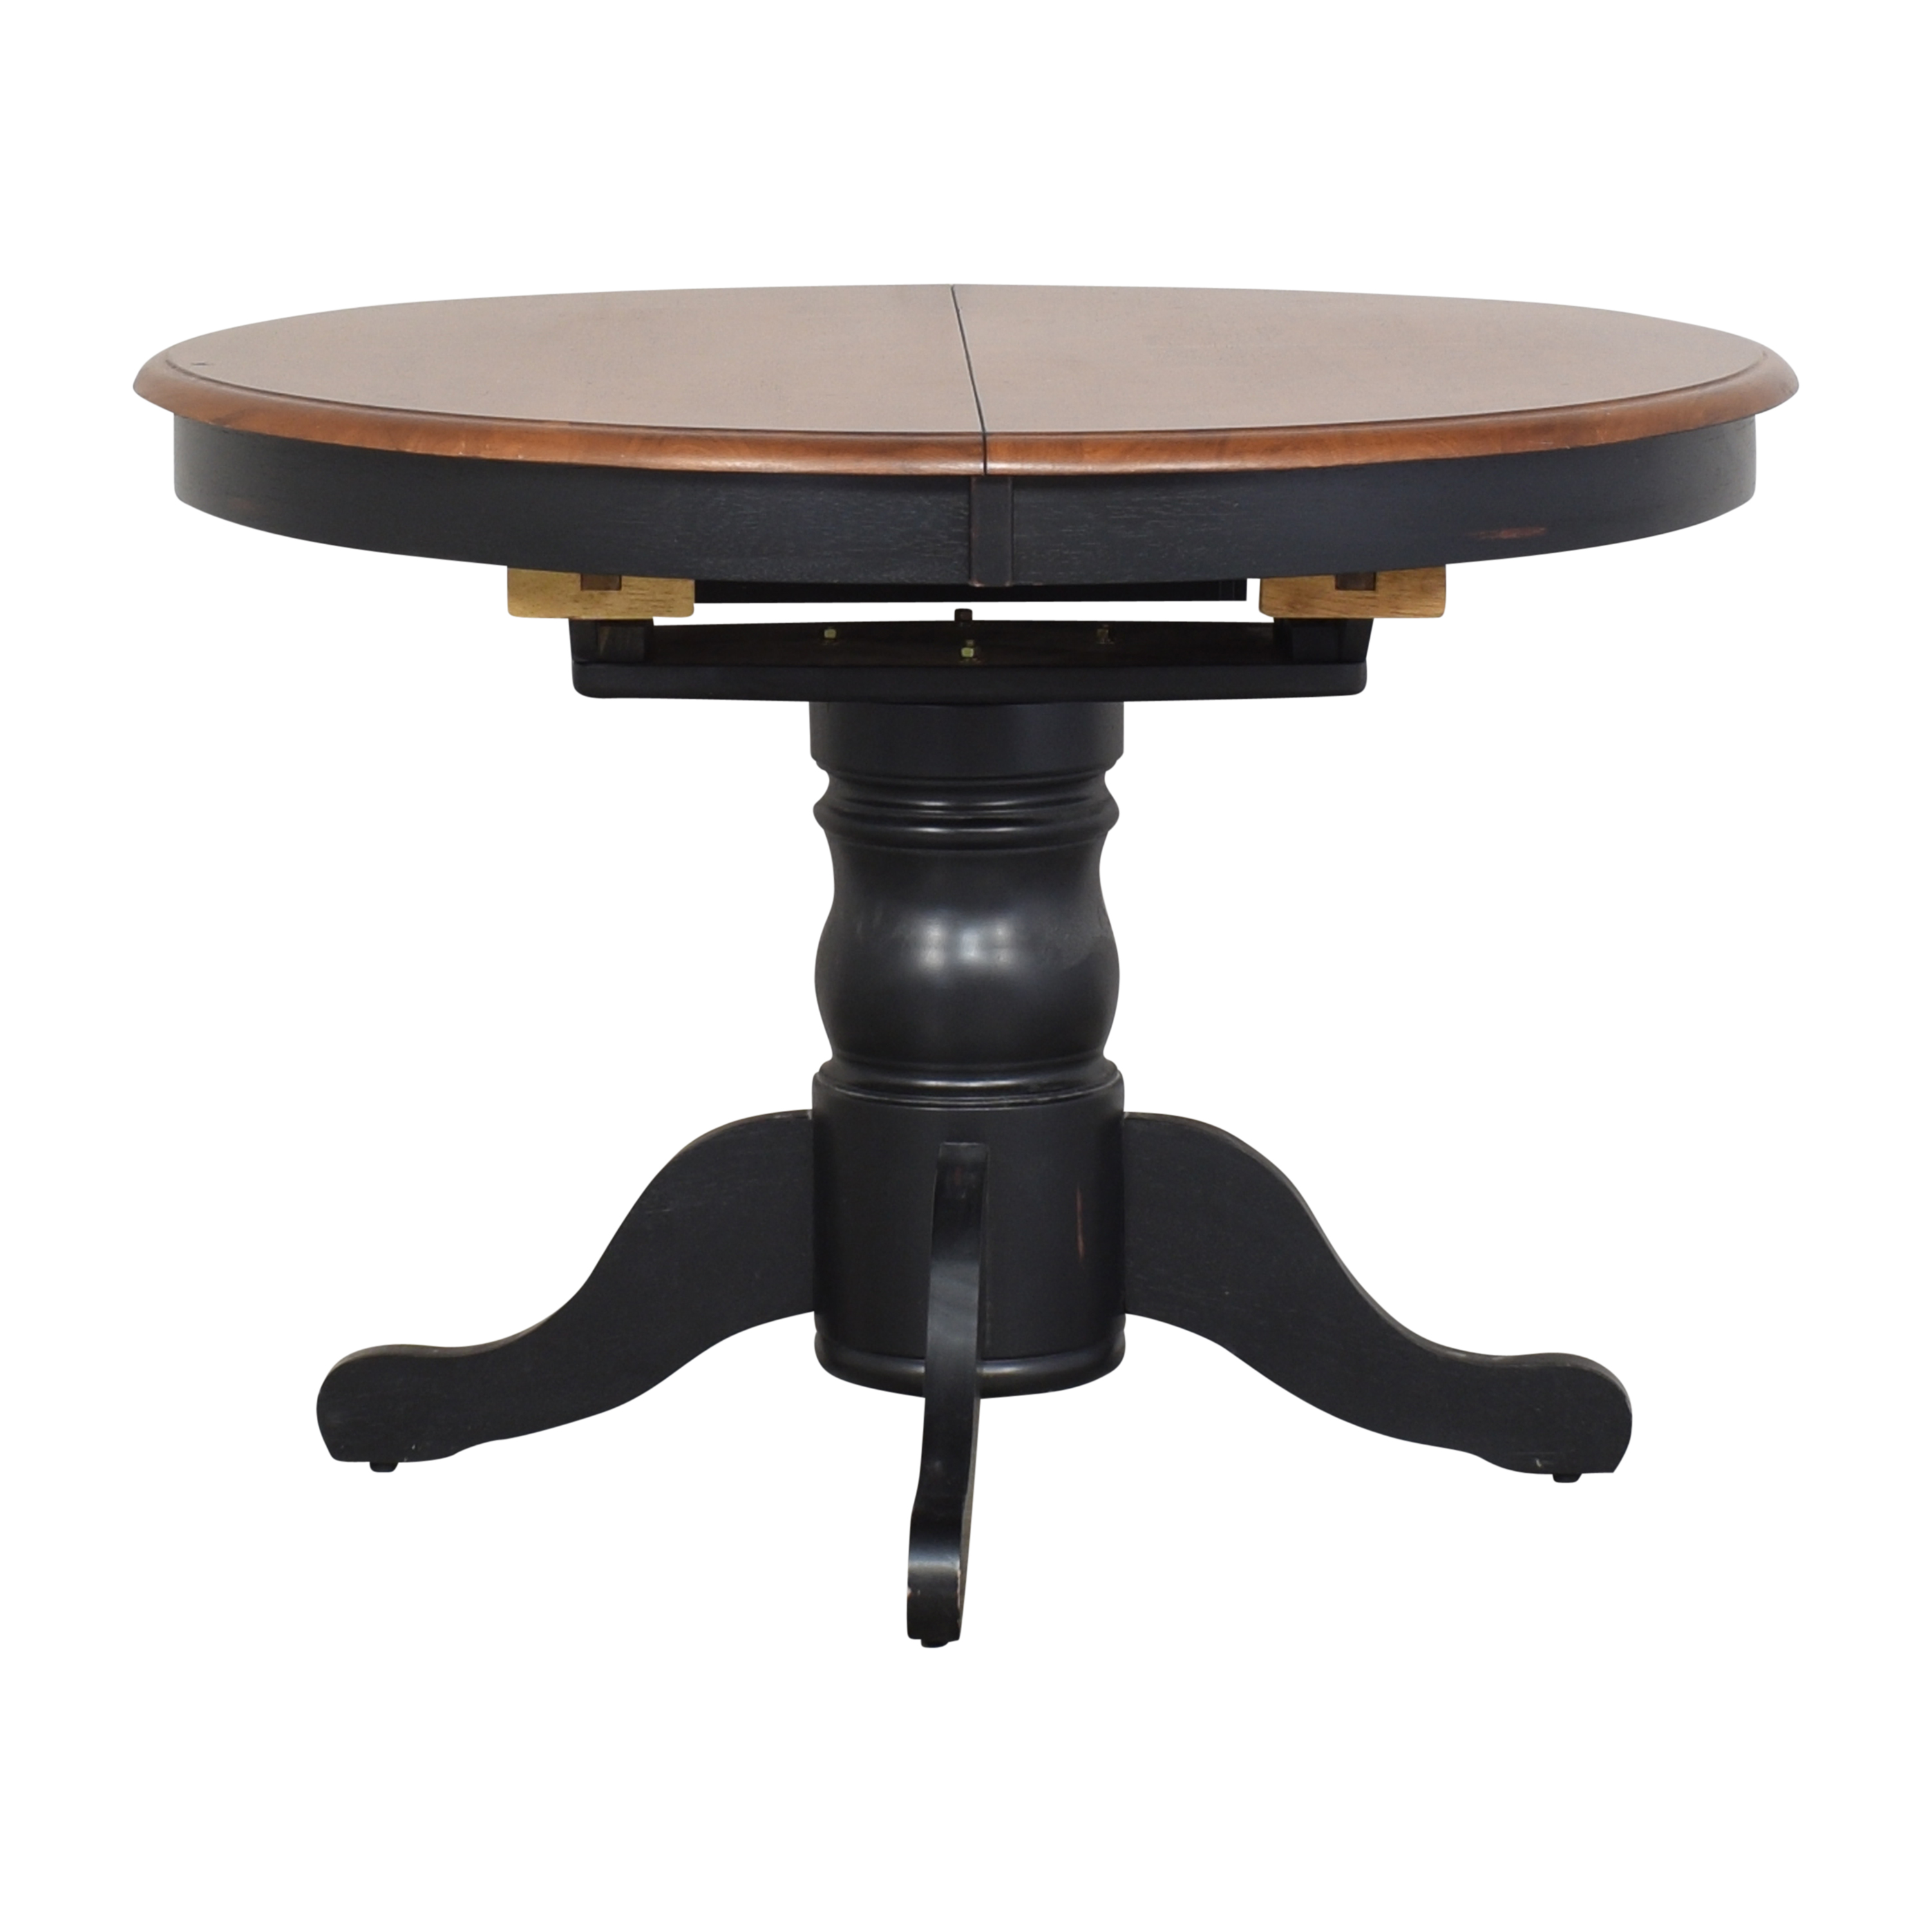 Bloomingdale's Bloomingdale's Round Extendable Dining Table coupon